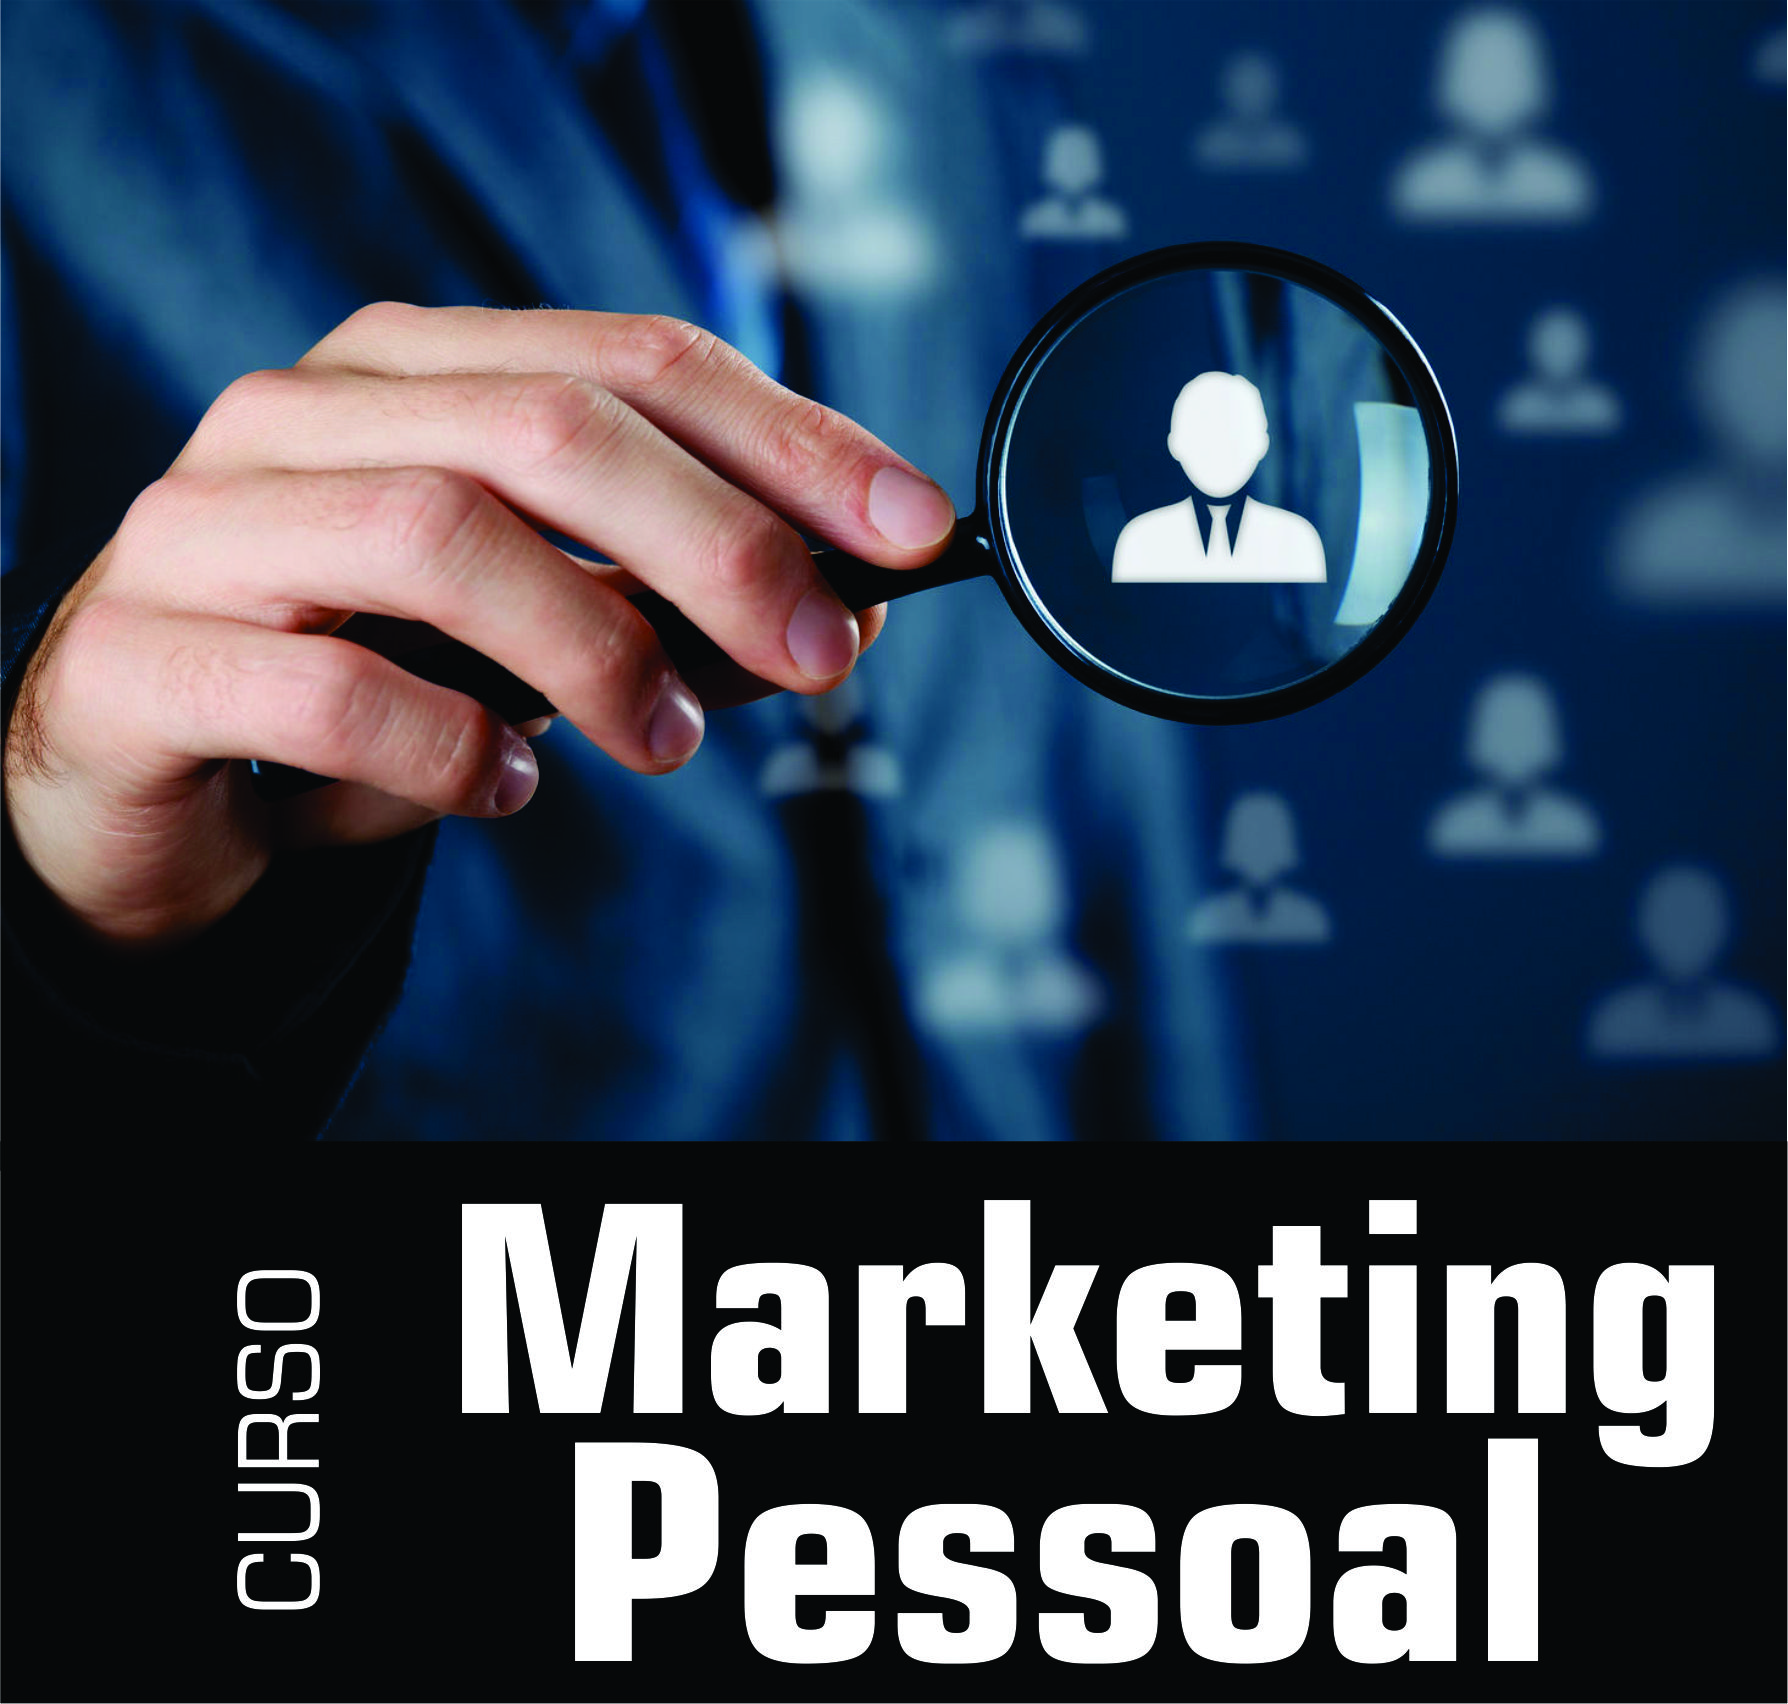 Marketing%2bpessoal%2bcurso